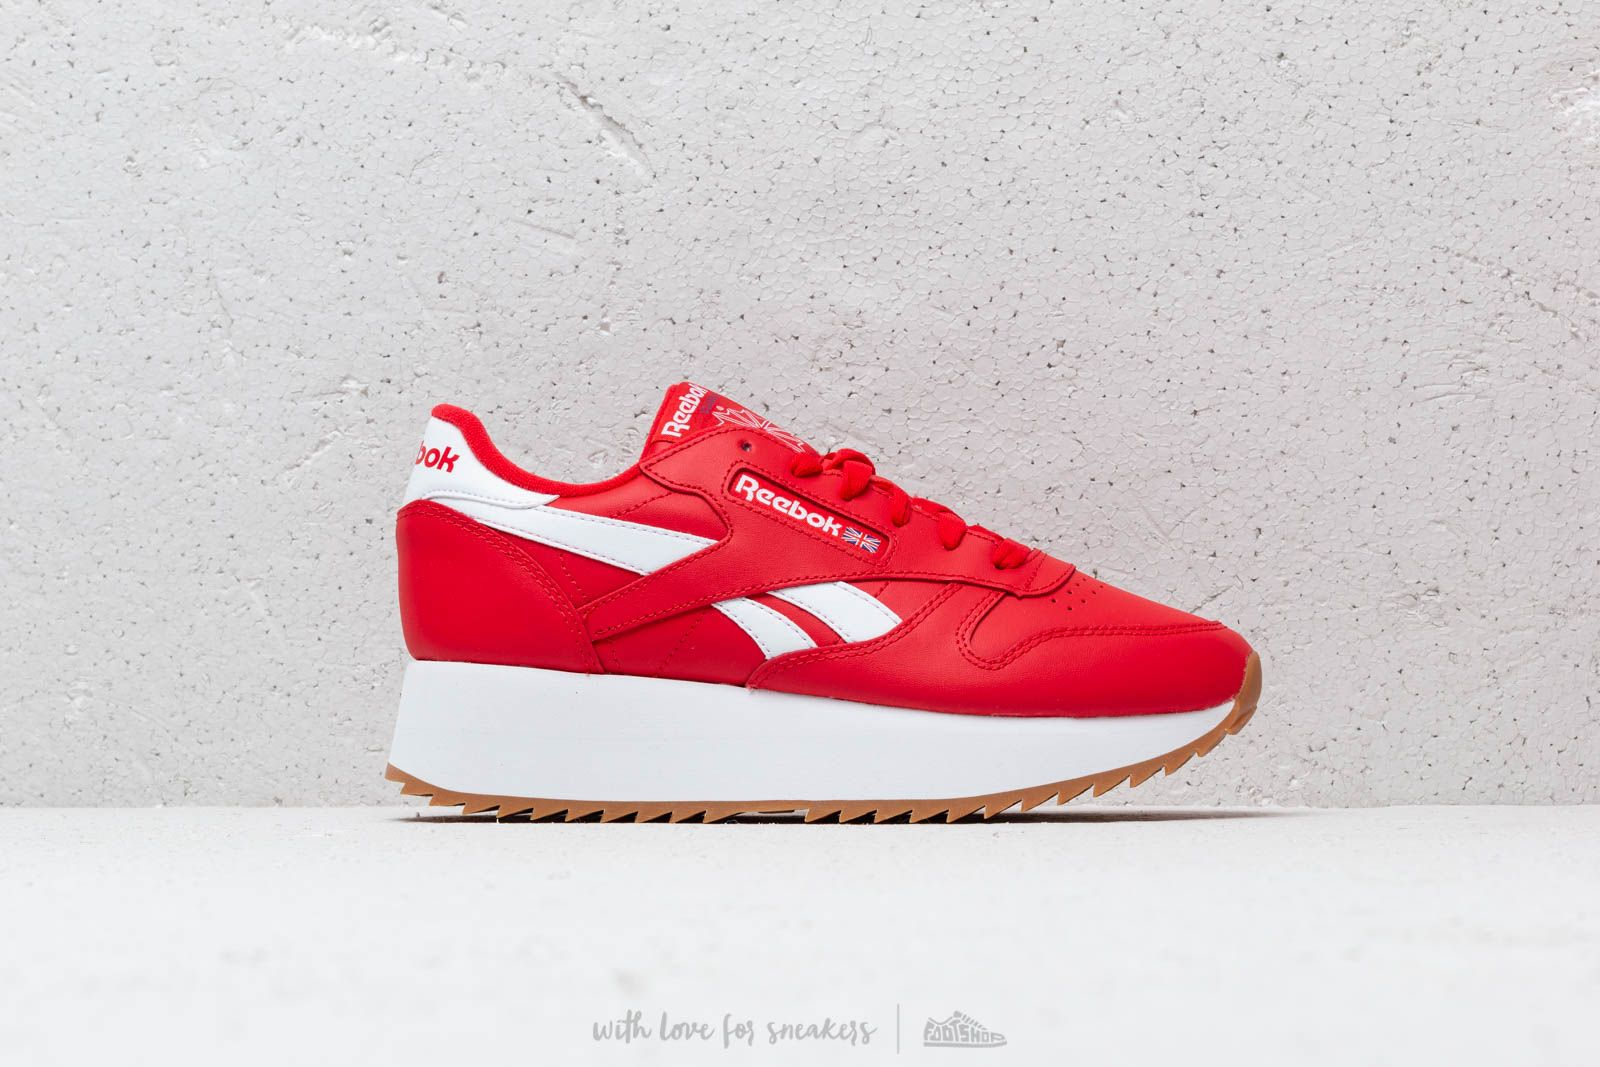 Reebok Classic Leather Double W Primal Red  White  Cobalt at a great price  106 bdac70a2c